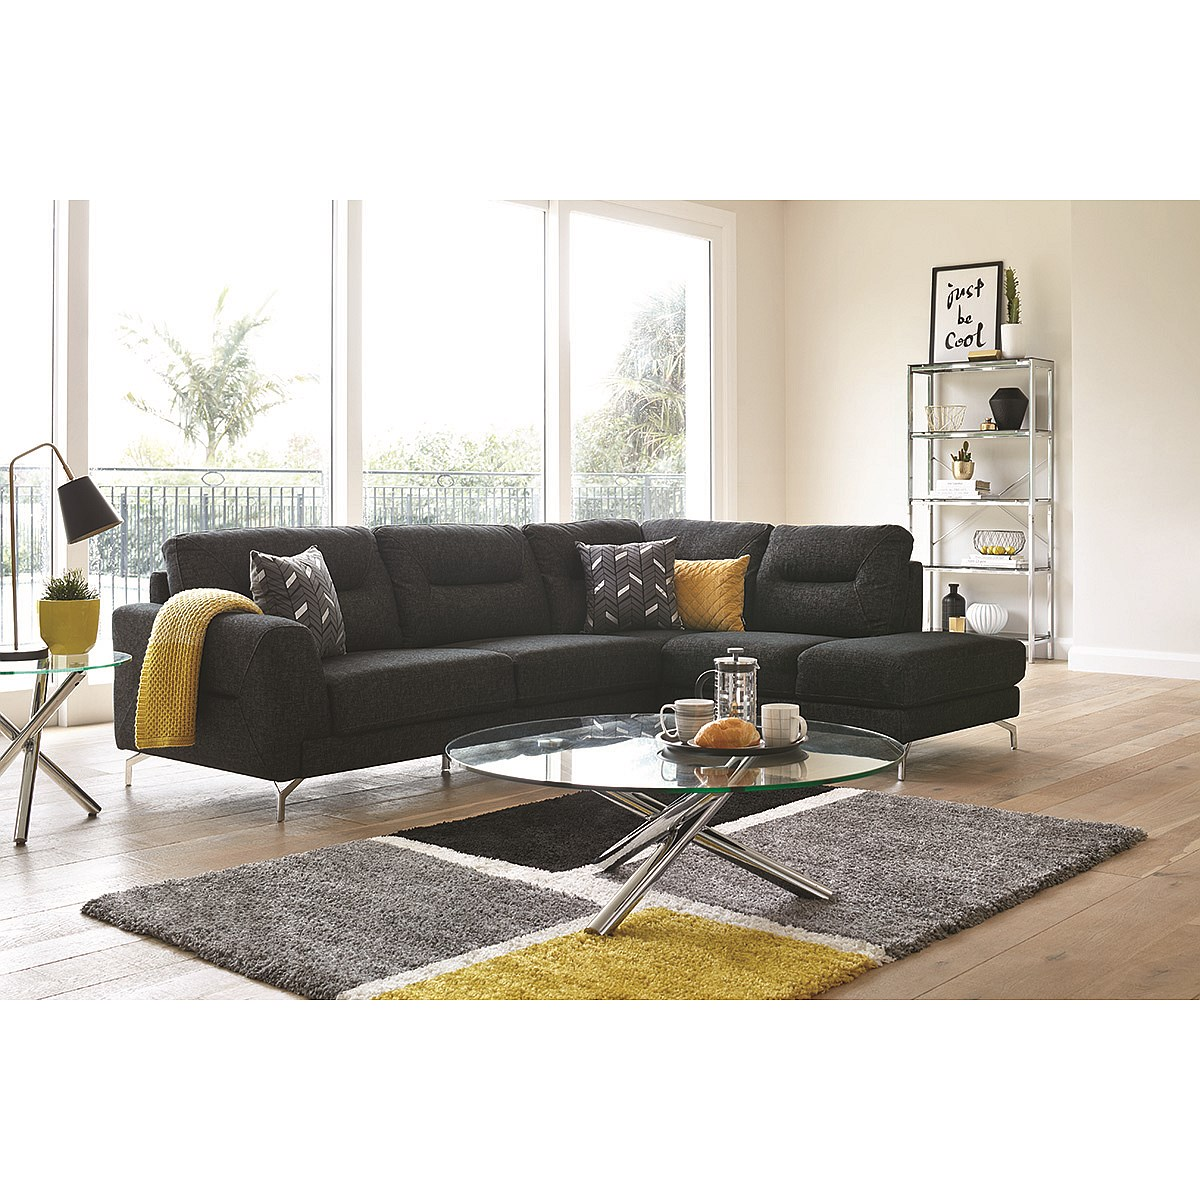 Caesar 3-Seater Fabric Sofa with Chaise